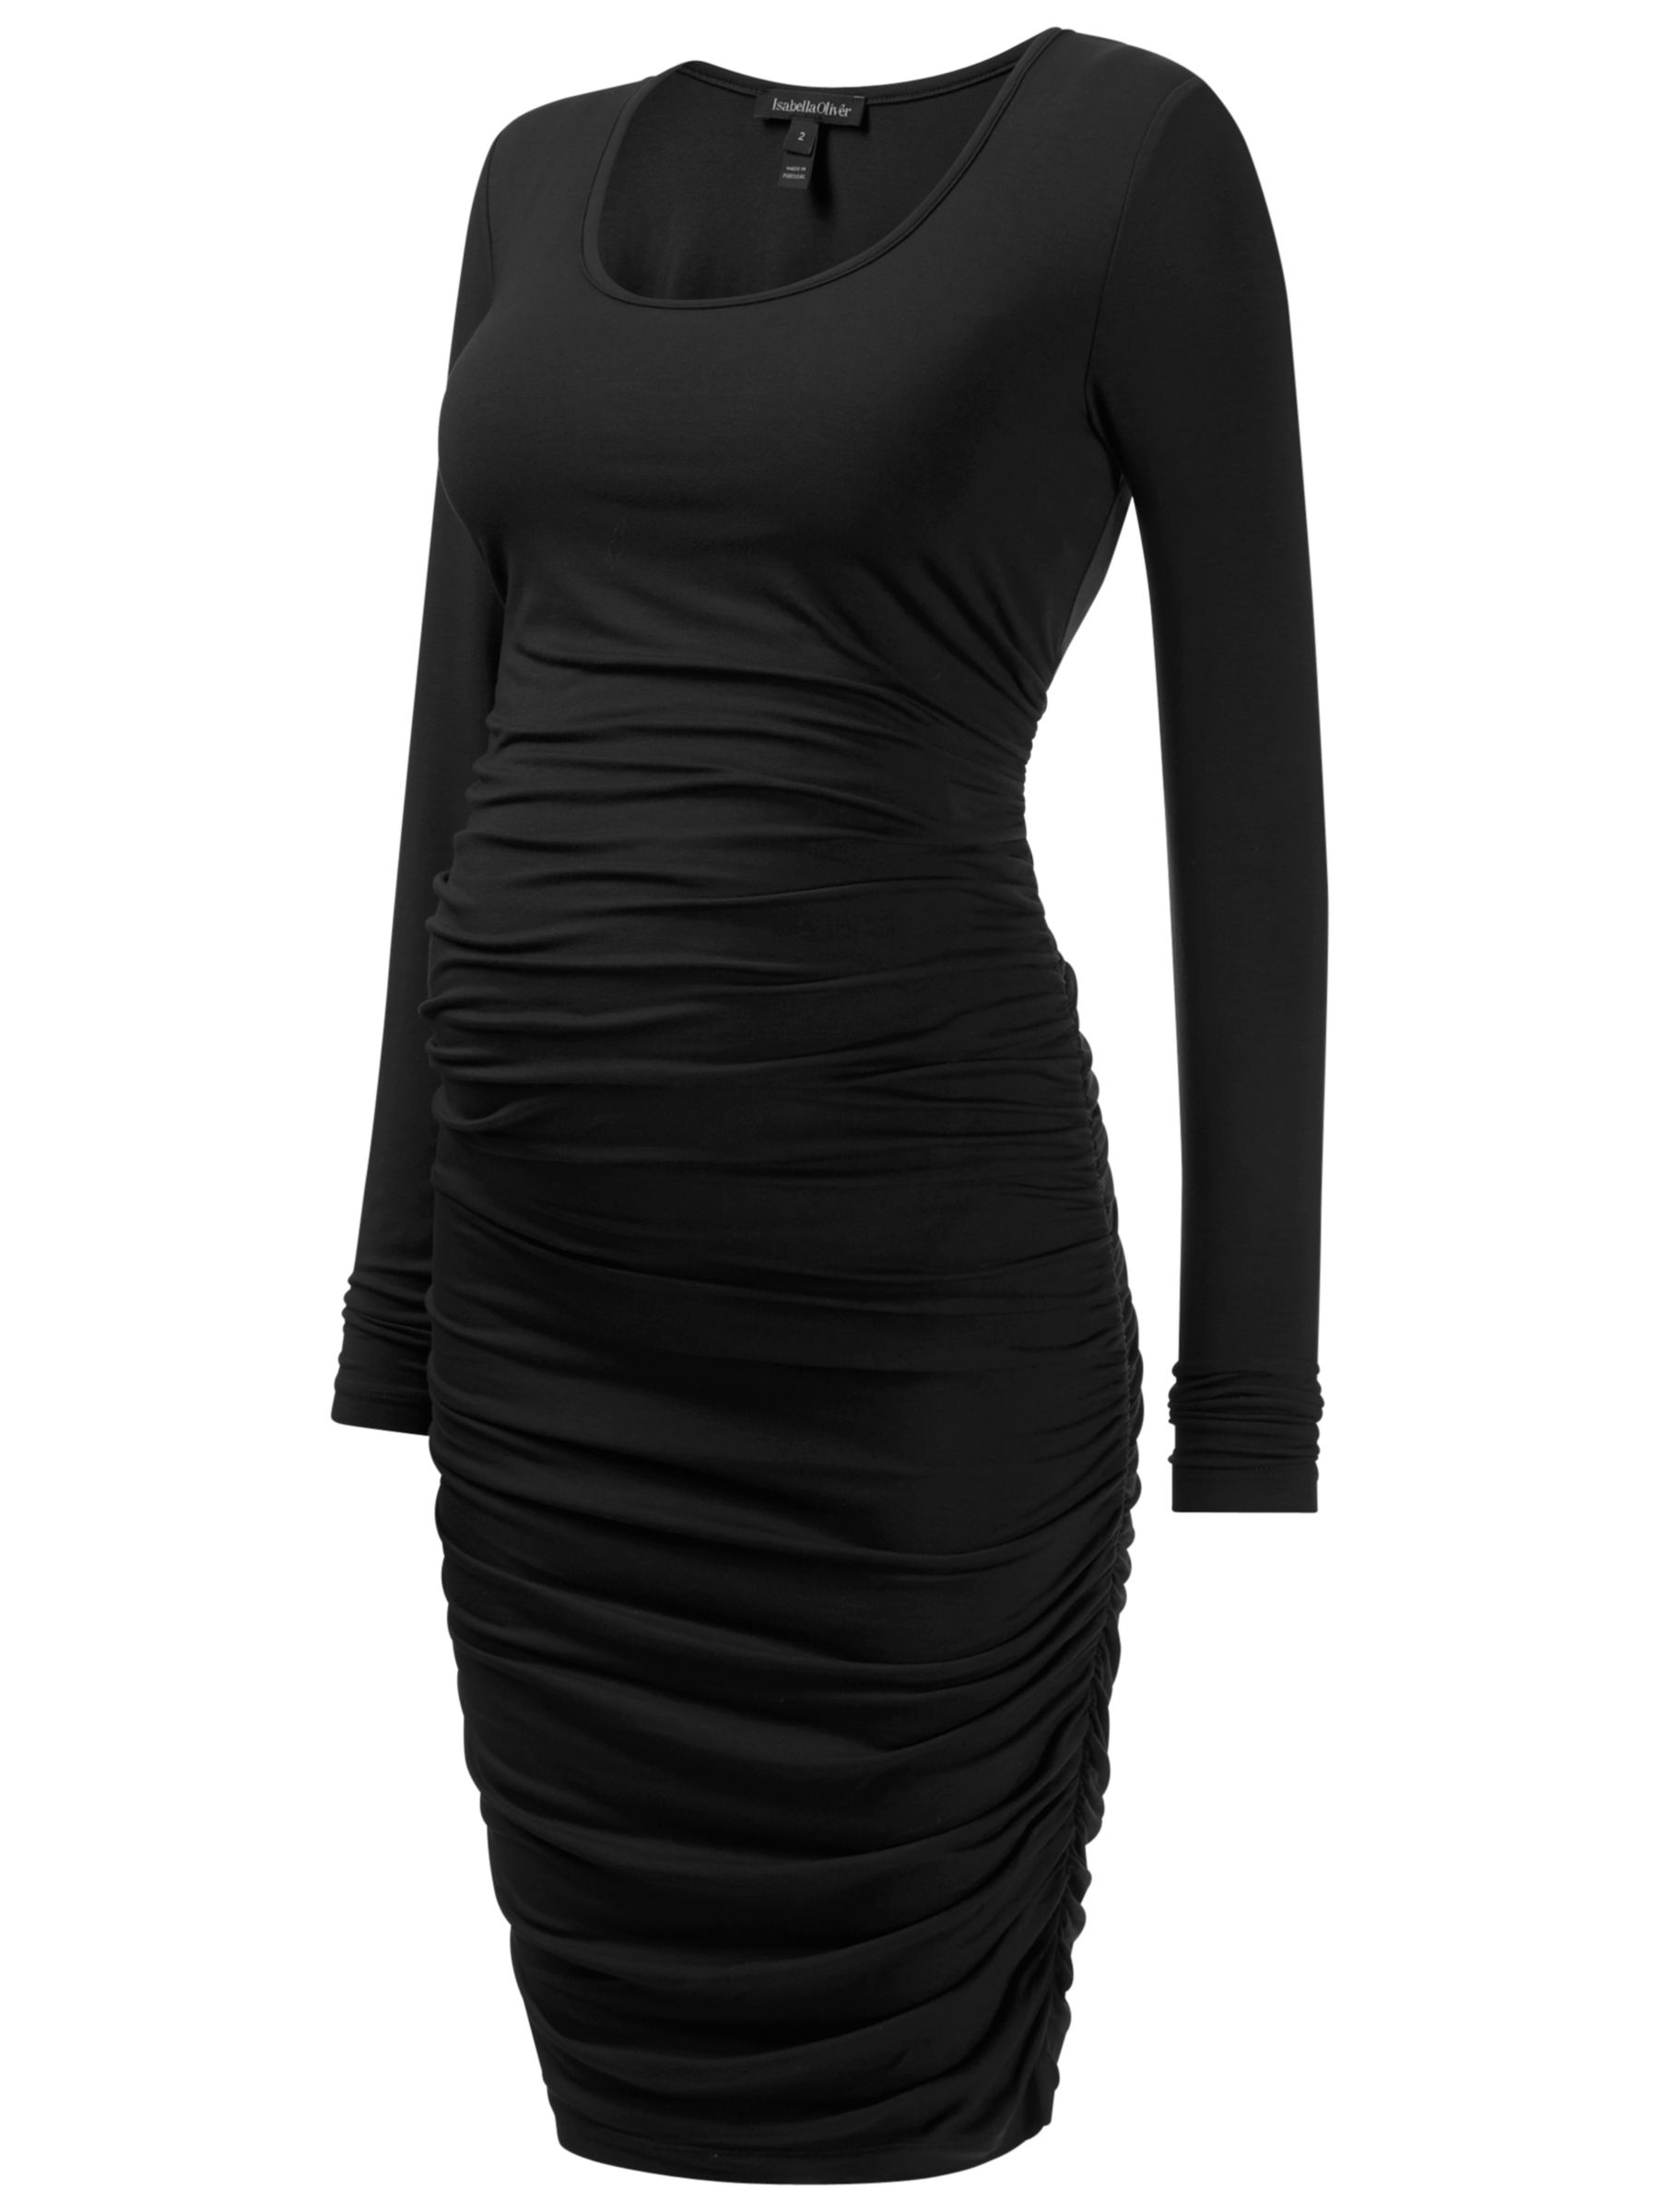 isabella oliver ruched long sleeve midi maternity dress black, isabella, oliver, ruched, long, sleeve, midi, maternity, dress, black, isabella oliver, 8|10|16|12|14, women, womens dresses, baby & child, pregnancy & maternity, maternity wear, 1494097